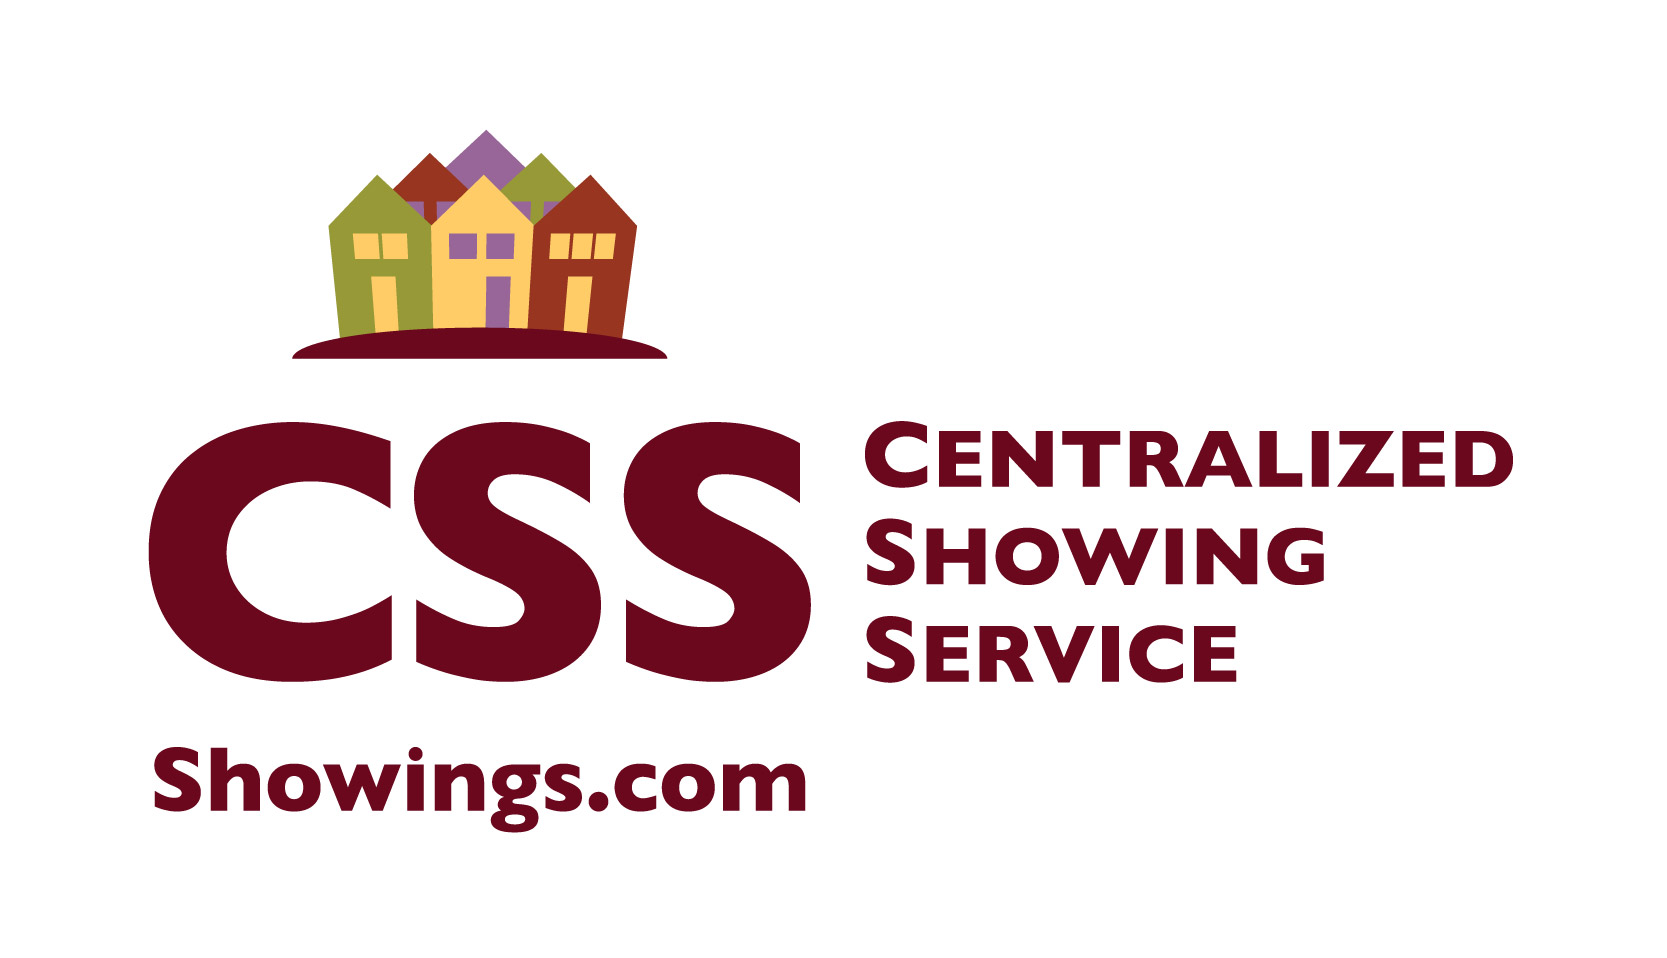 CSS_logo_all_red_hiRes_.jpg